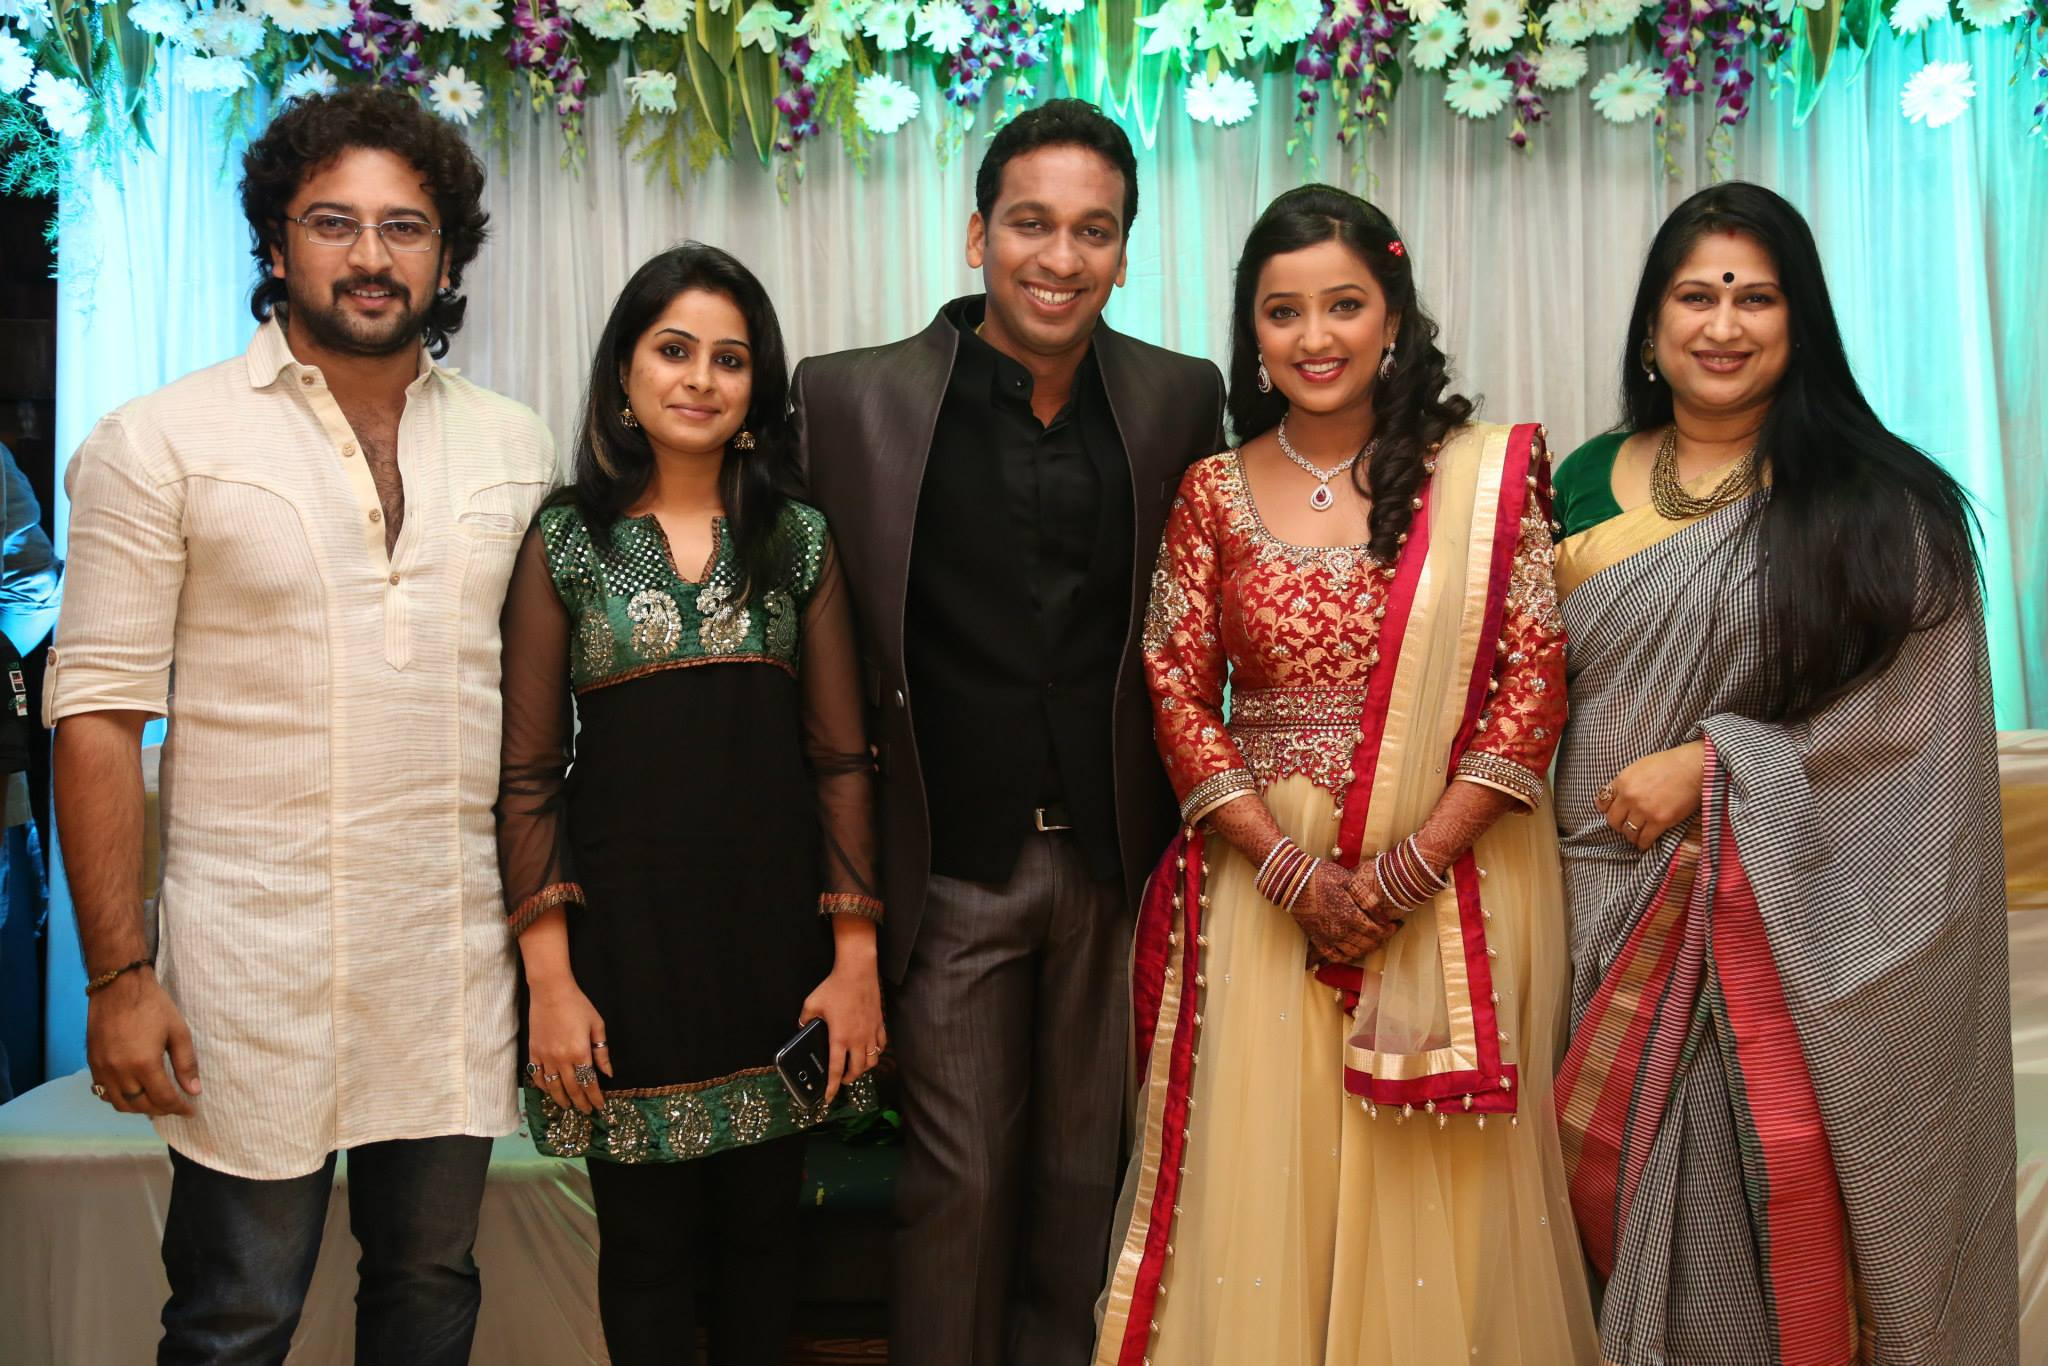 Gallery images and information: Mrunal Dusanis Real Marriage